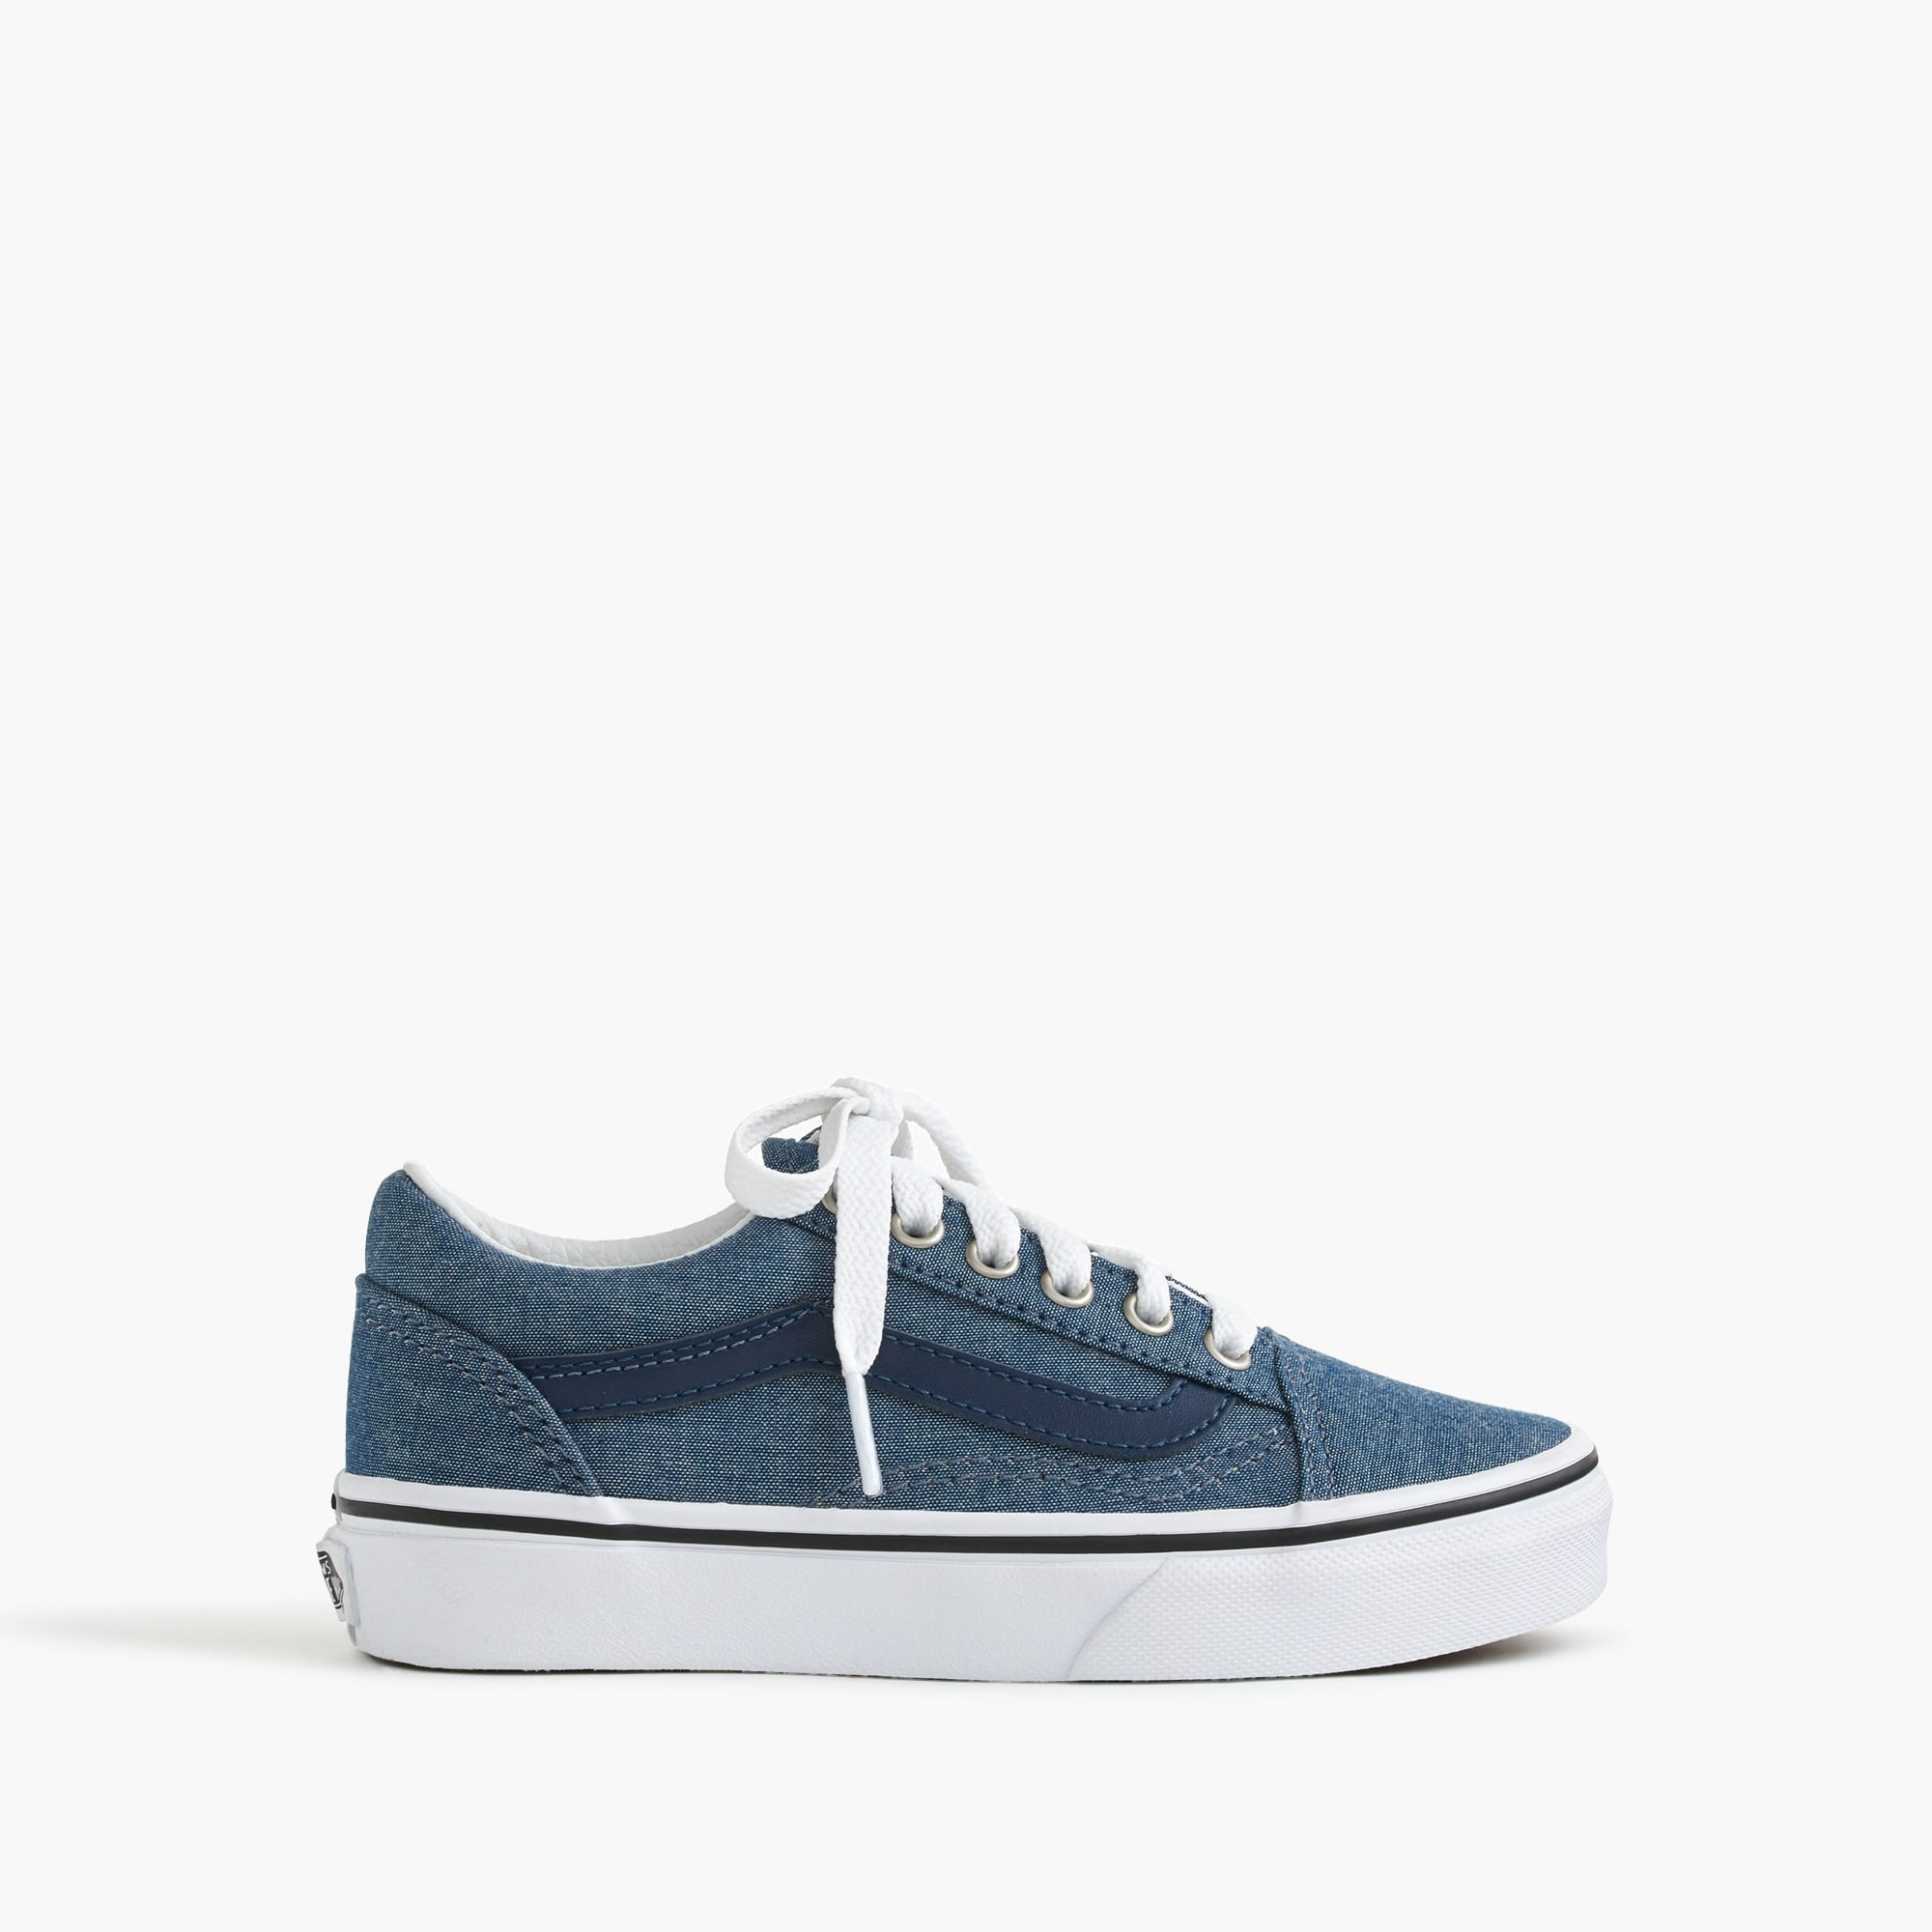 kids' vans® lace-up old skool sneakers : boy sneakers